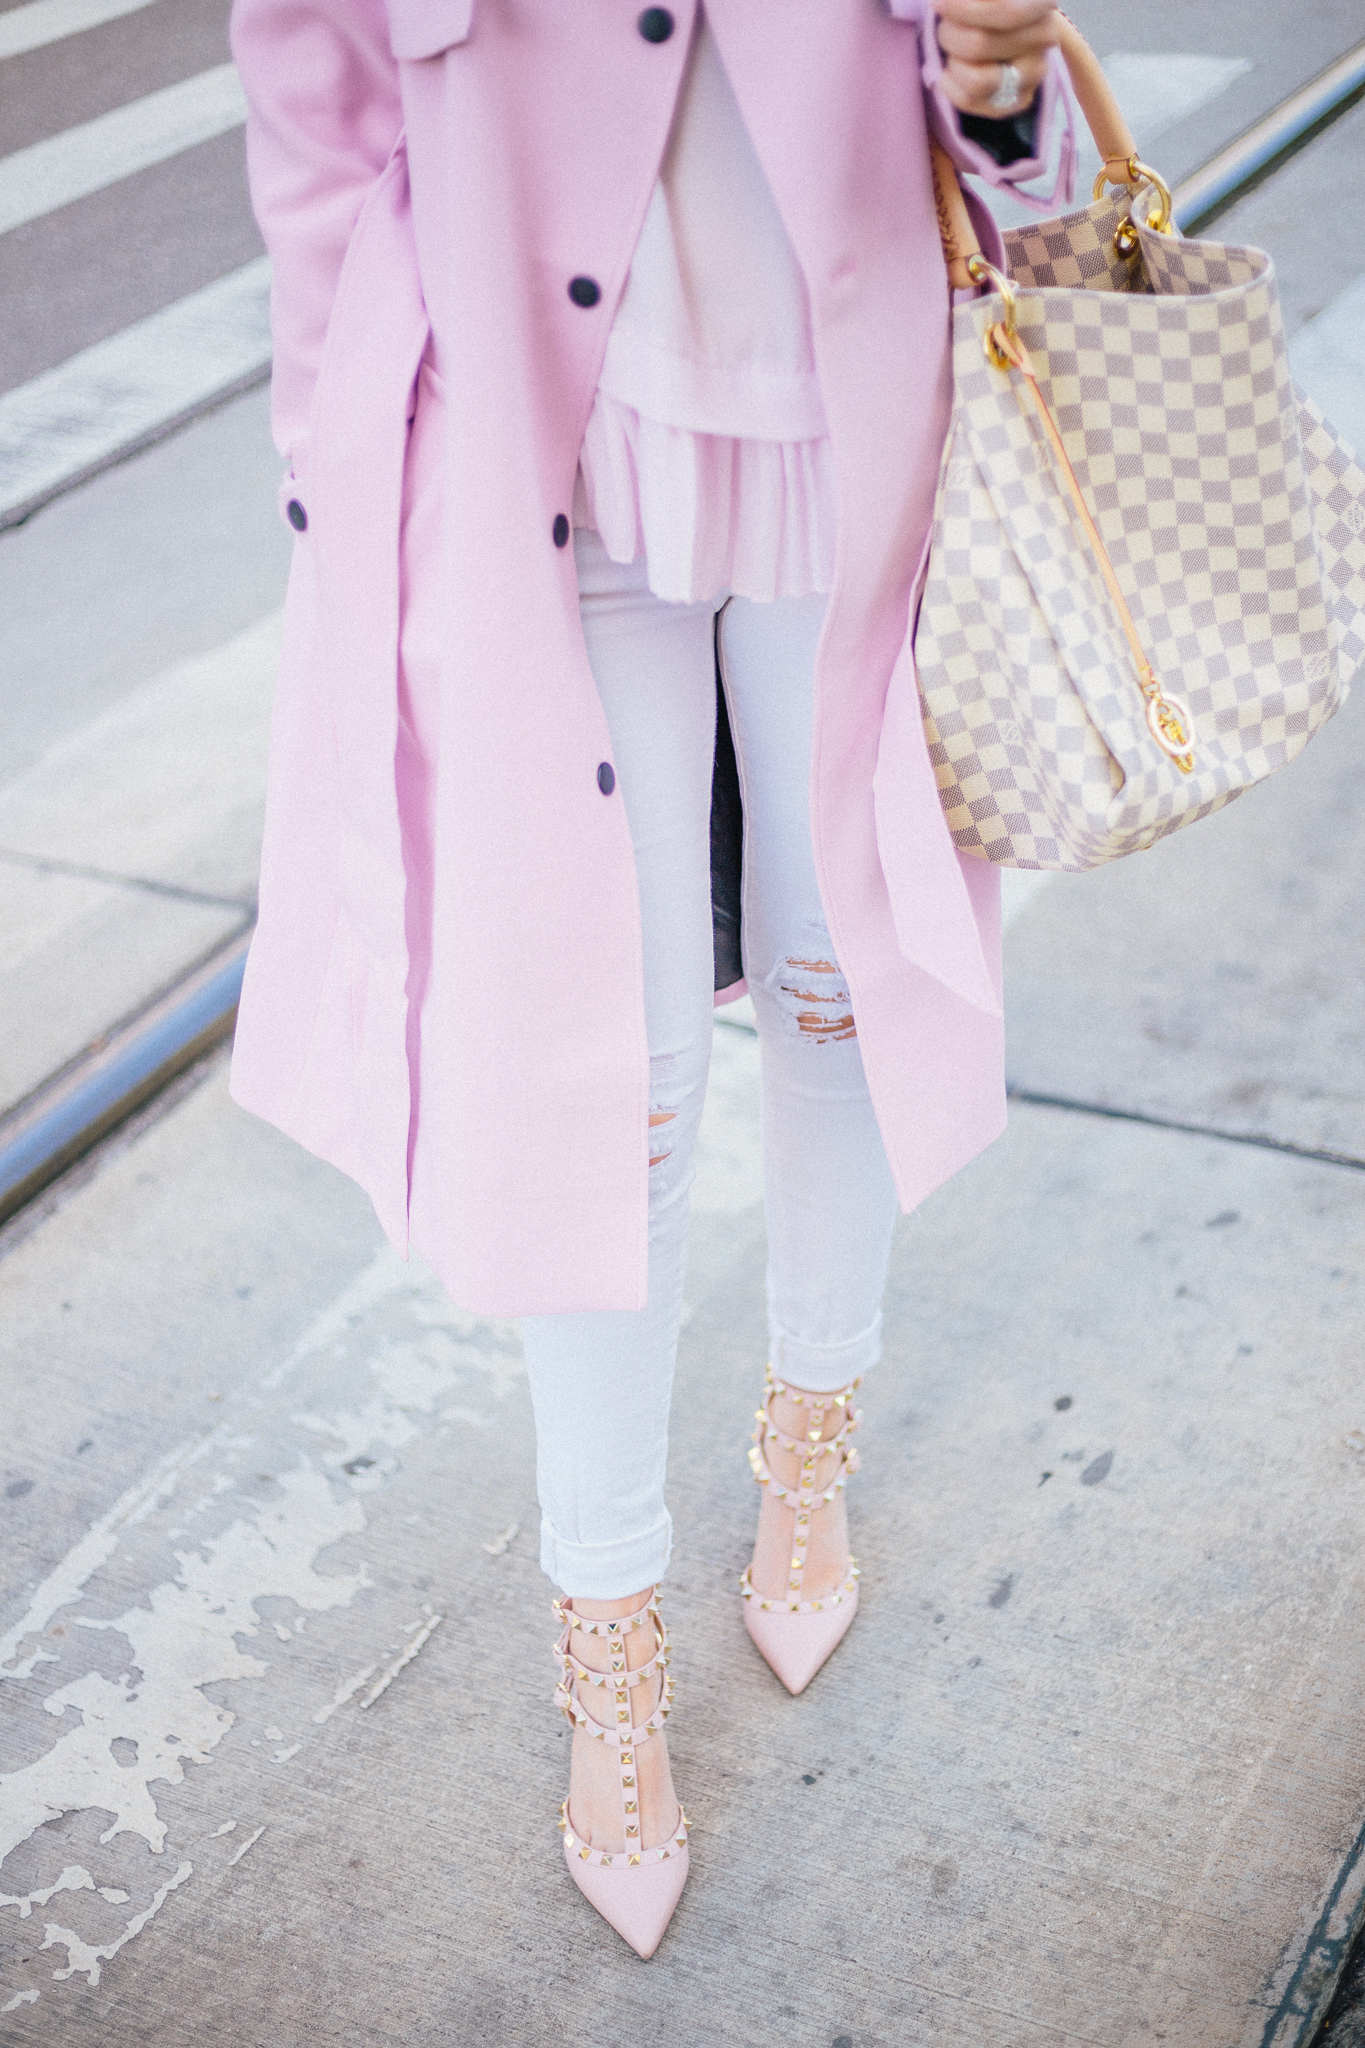 How to wear pastels in fall and winter| wear pastels, pastels, pink coat, pink Valentino rockstuds, Valentino rockstuds, Valentino shoes, Valentino kitten heels, Louis Vuitton artsy. artsy damier azur, white ripped jeans, white fall fashion, fall fashion, asos coat, Nordstrom top